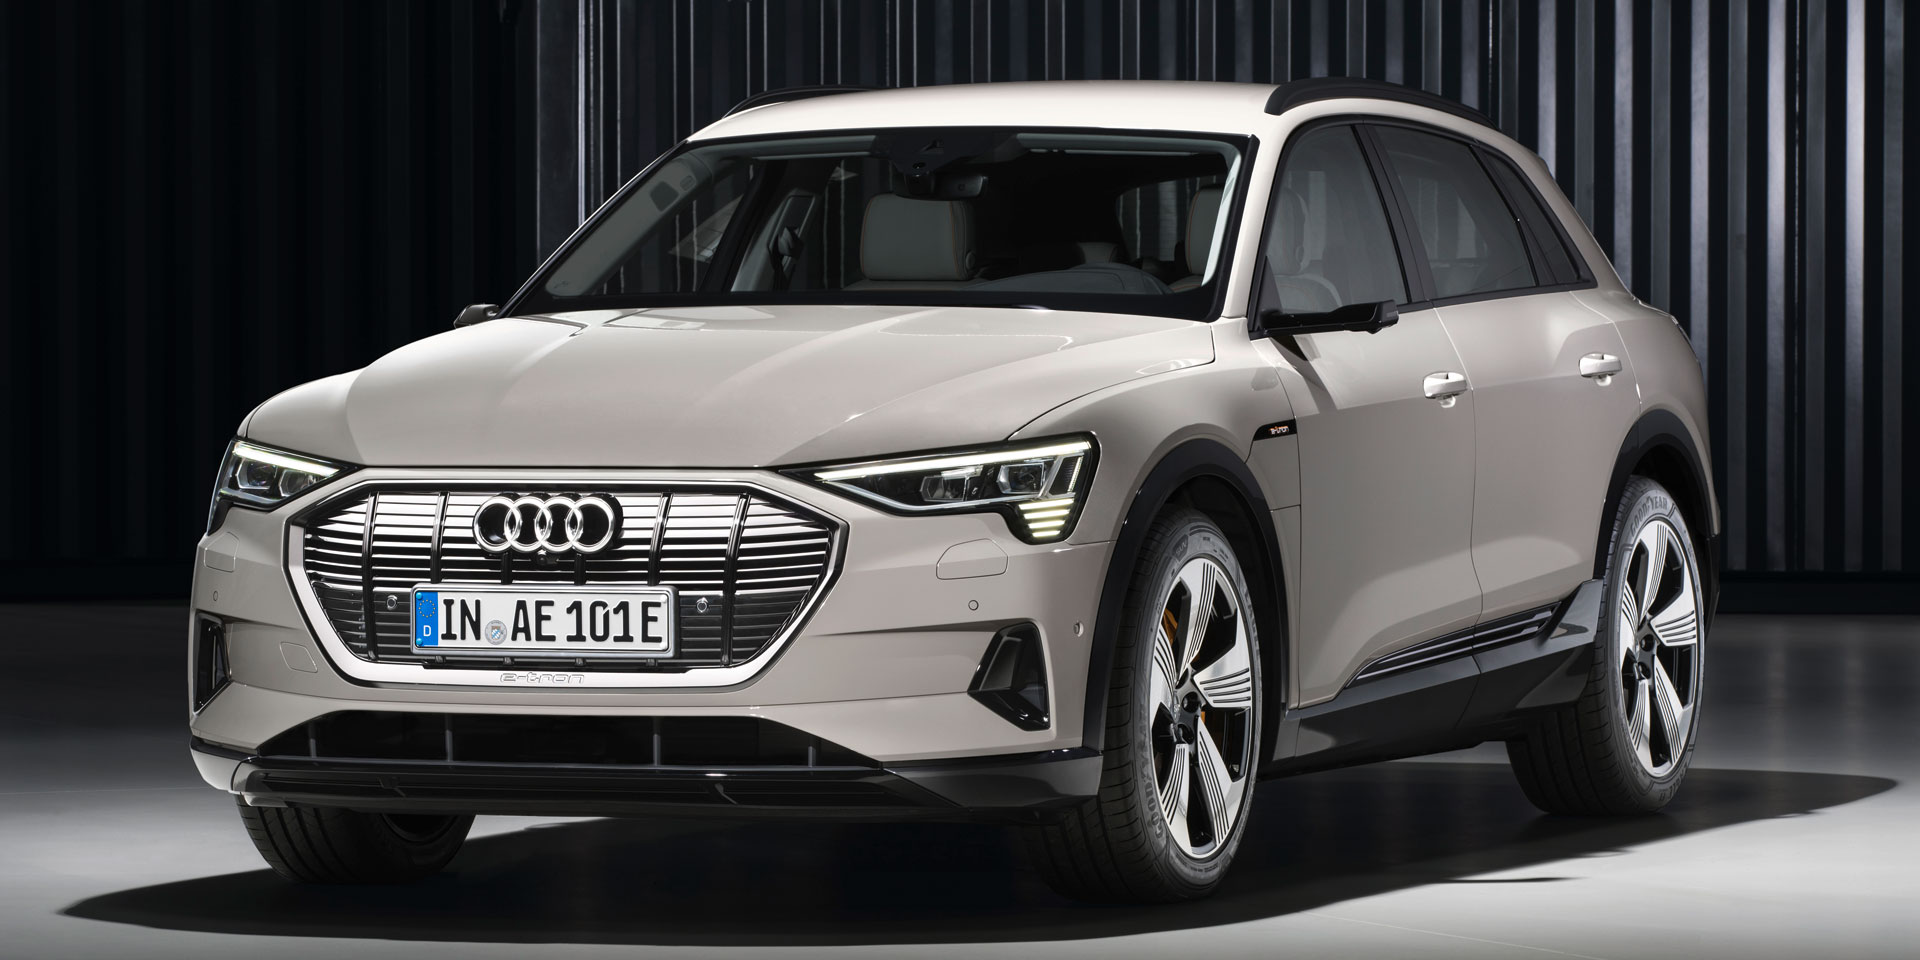 2019 Audi E Tron Vehicles On Display Chicago Auto Show